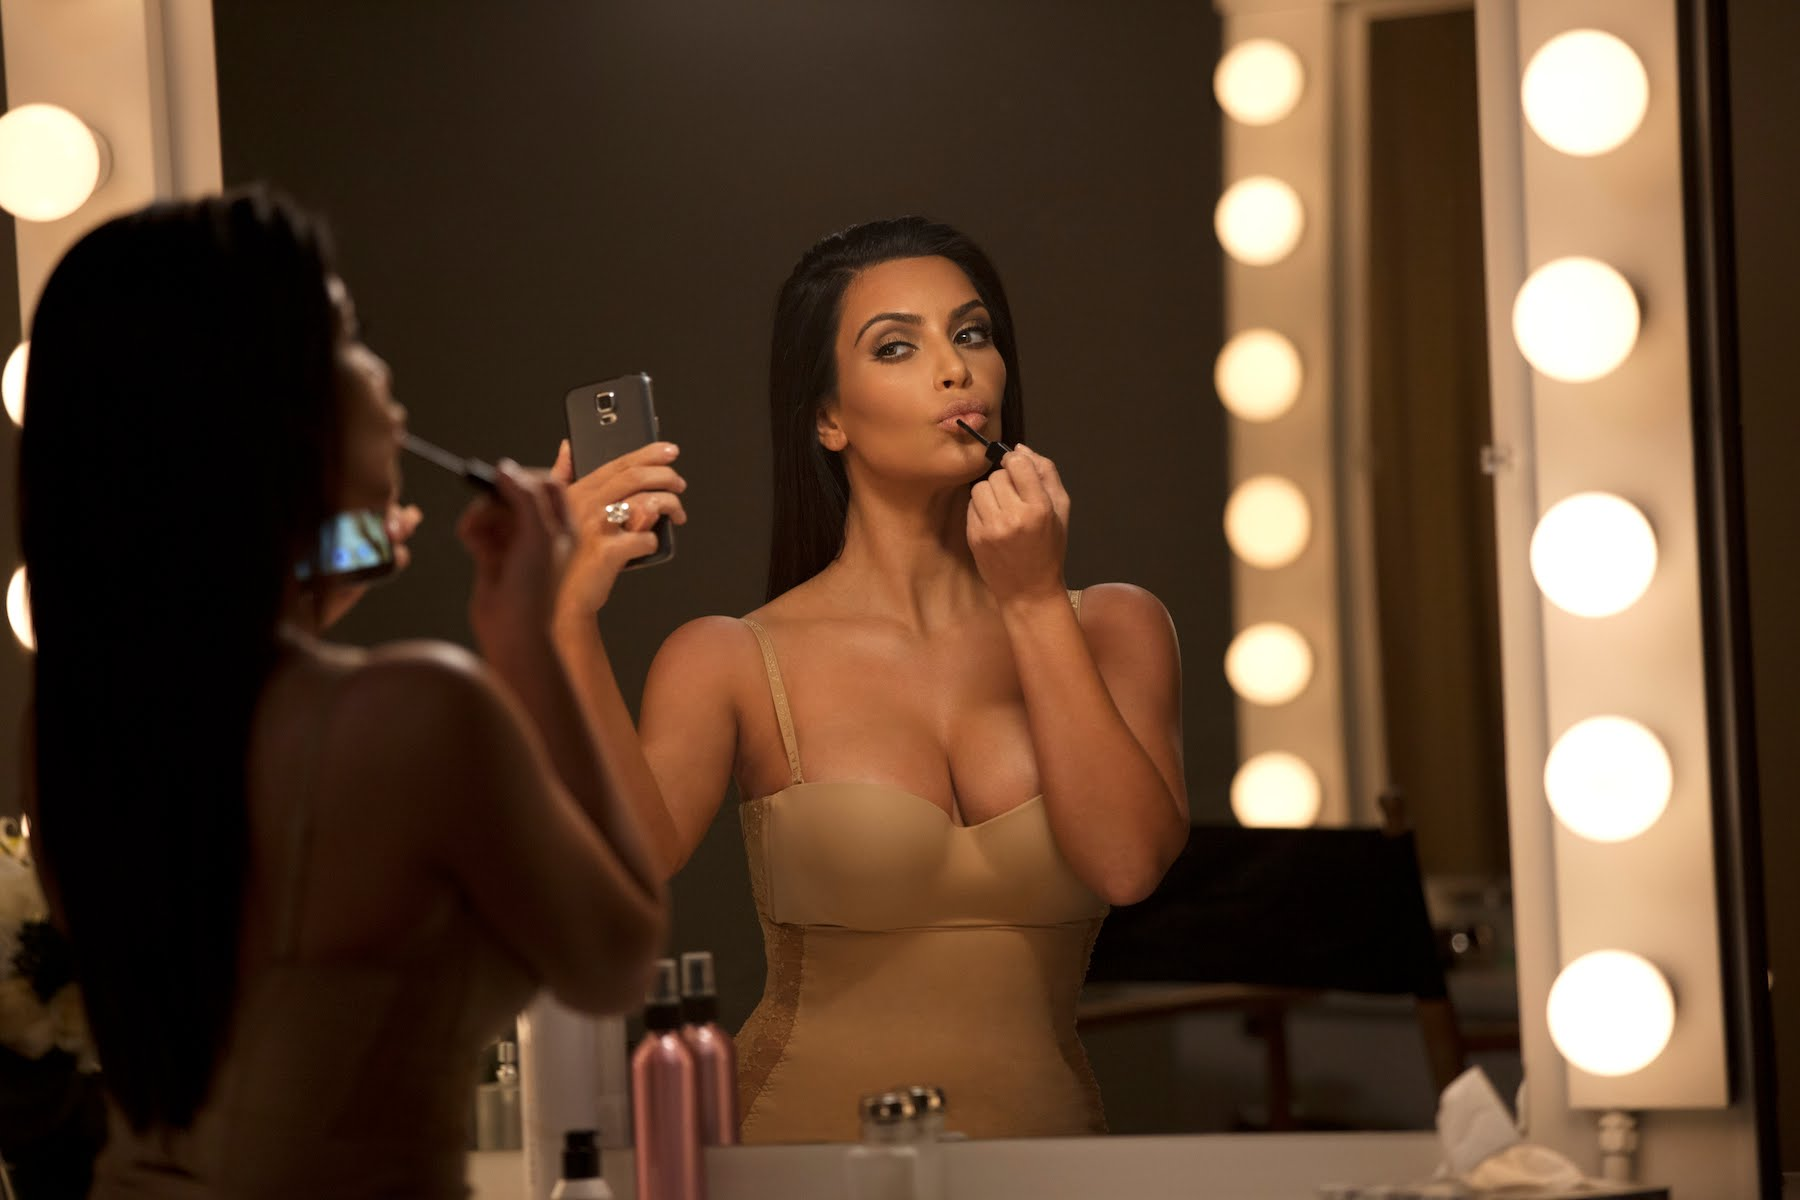 #KimsDataStash | T-Mobile Commercial